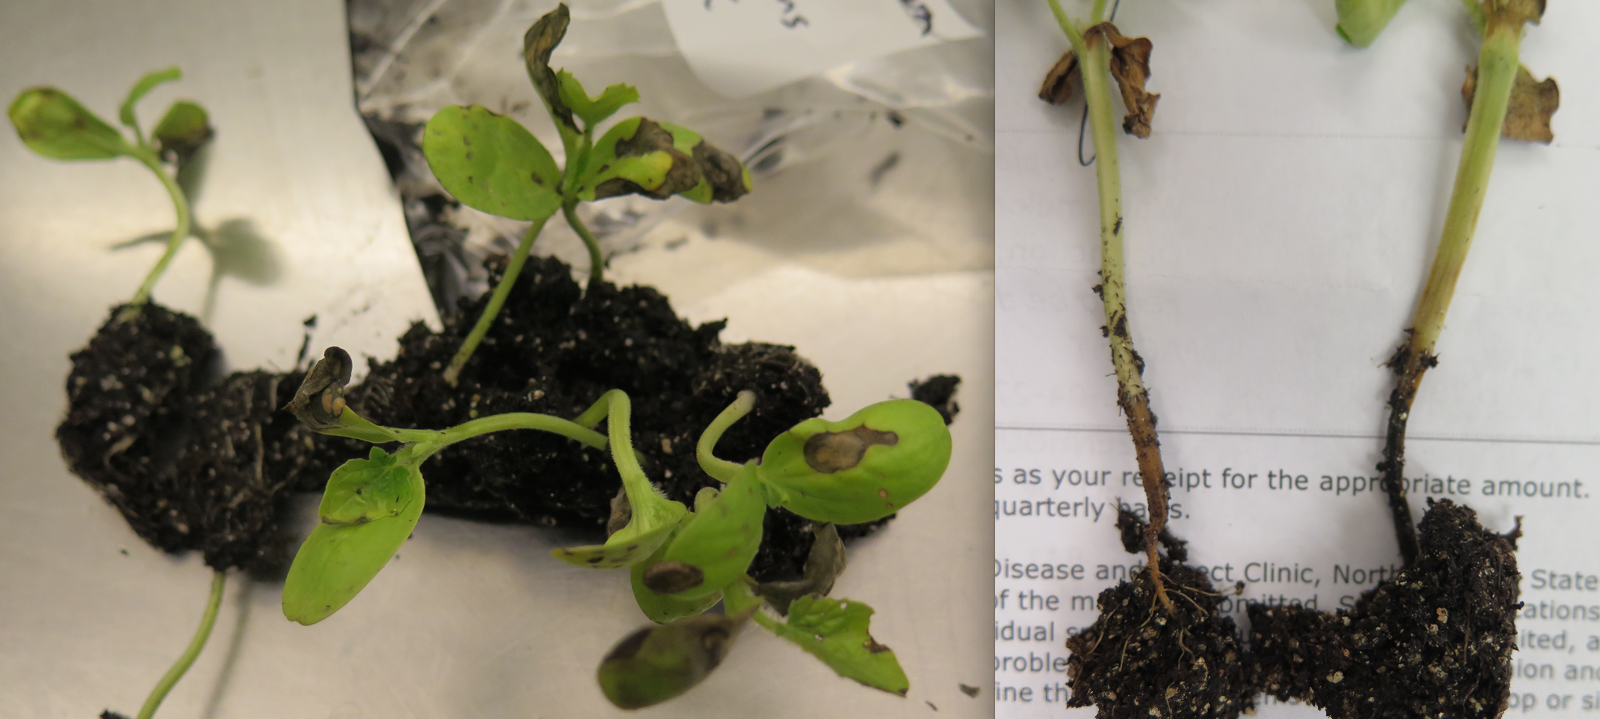 Fig. 2: water soaked lesions on crowns of infected watermelon seedlings and leaves with necrotic, brown lesions (Photo: Shawn Butler, NCSU Plant Disease and Insect Clinic)